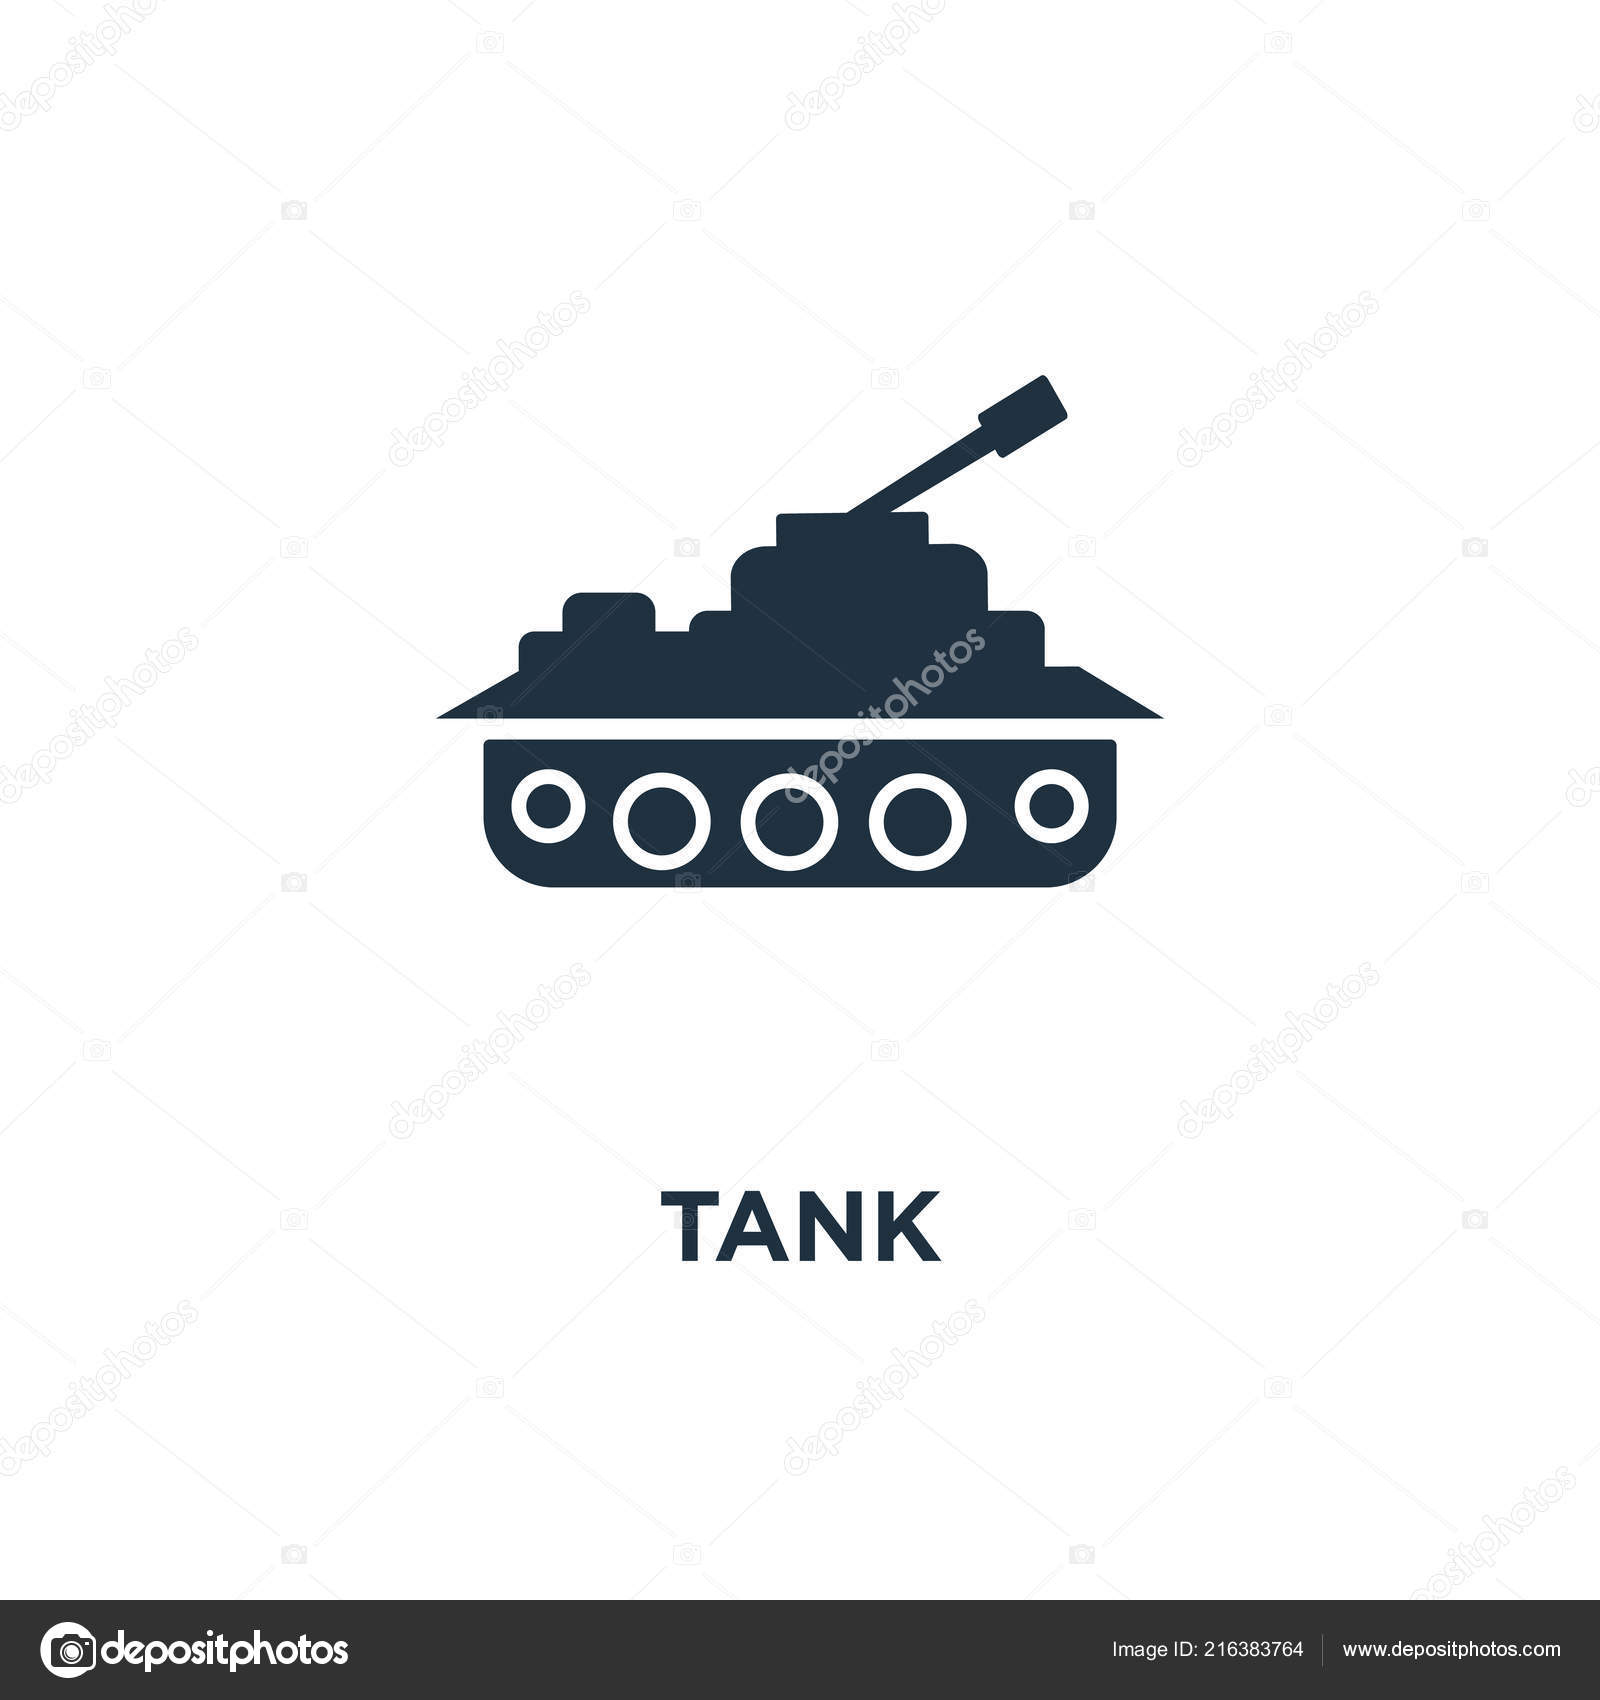 tank icon black filled vector illustration tank symbol white background stock vector c mmvector 216383764 https depositphotos com 216383764 stock illustration tank icon black filled vector html